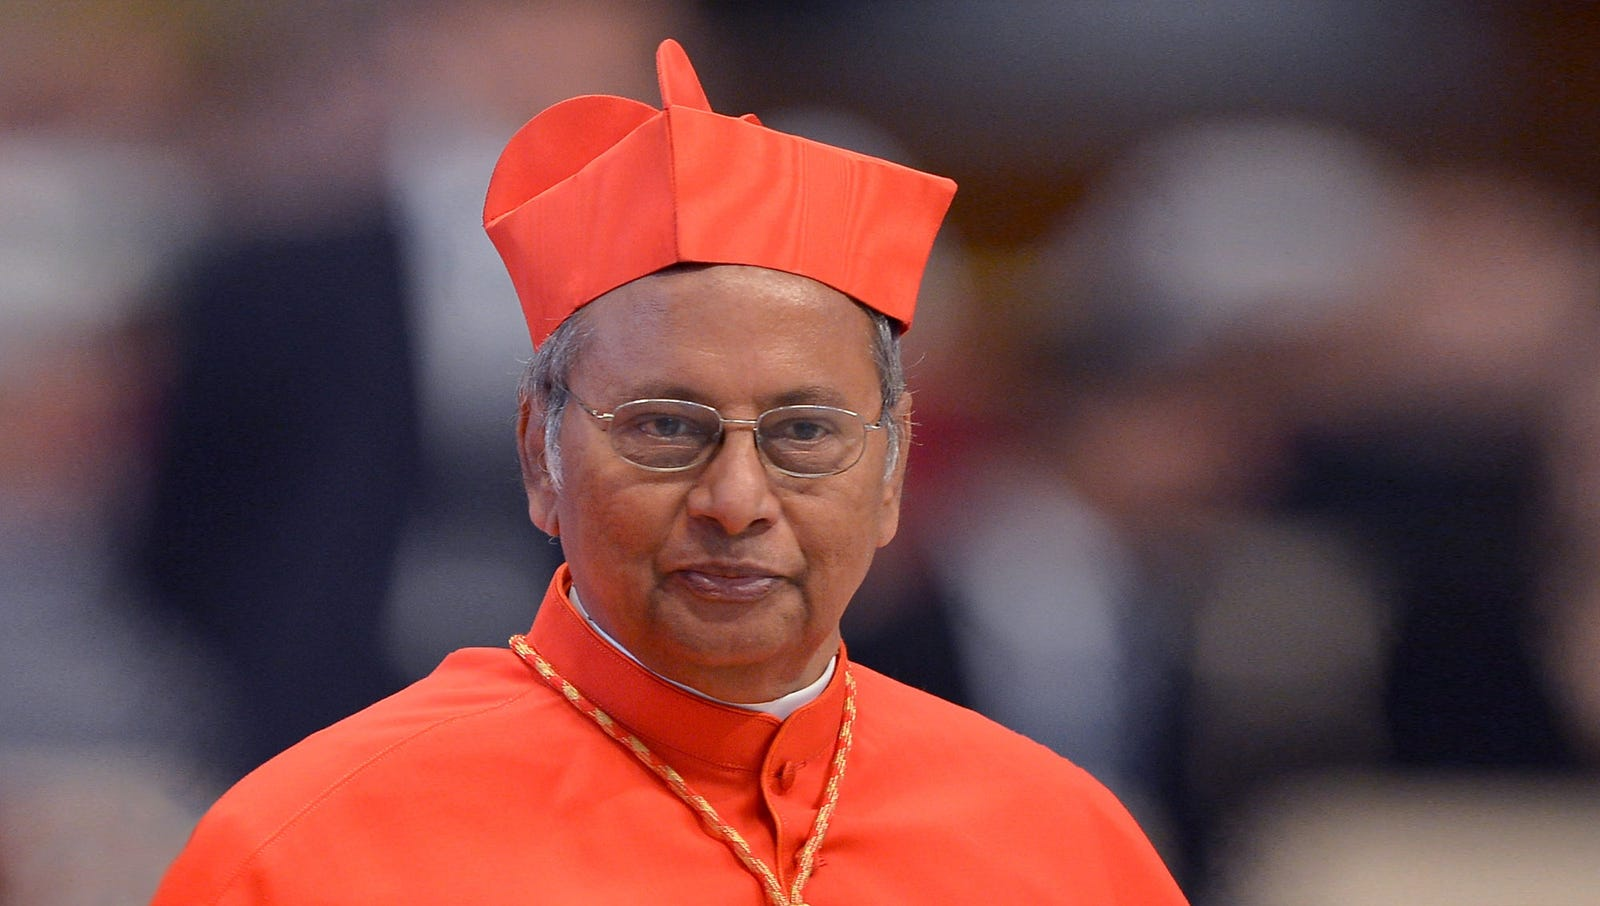 We love that Cardinal Ranjith took a chance on this look, but the execution is a major fail. The cape needs to be hemmed, the cross is dangling all over the place, and that boxy floor-length robe isn't doing his figure any favors.